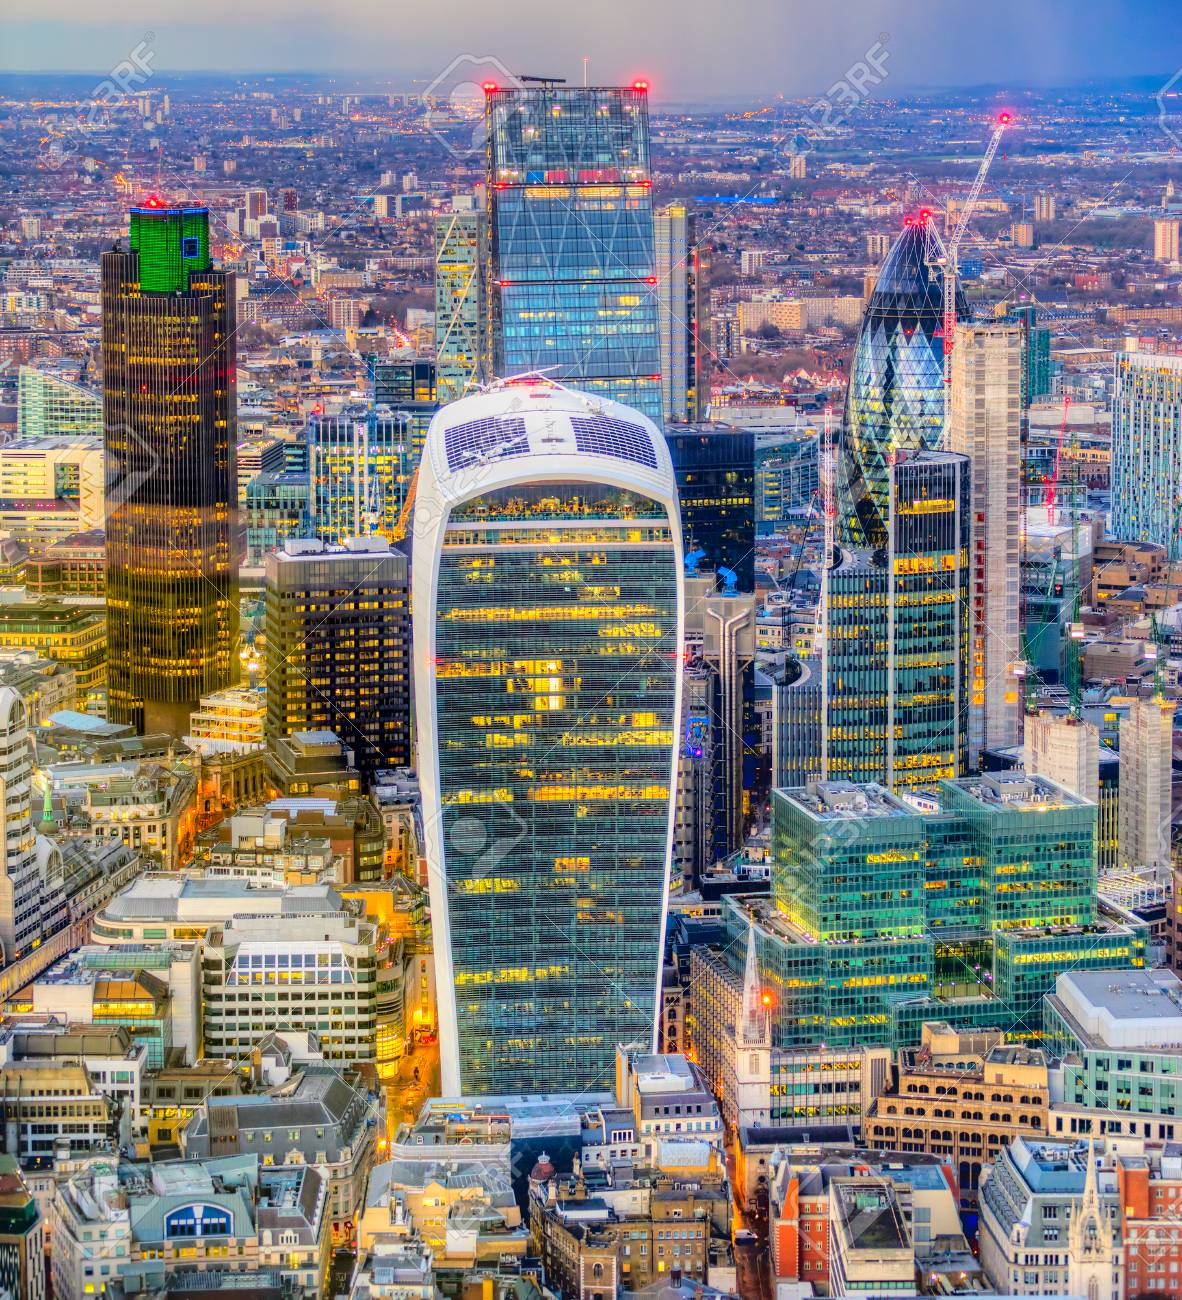 City Of London Financial District London Uk Stock Photo Picture And Royalty Free Image Image 93936264